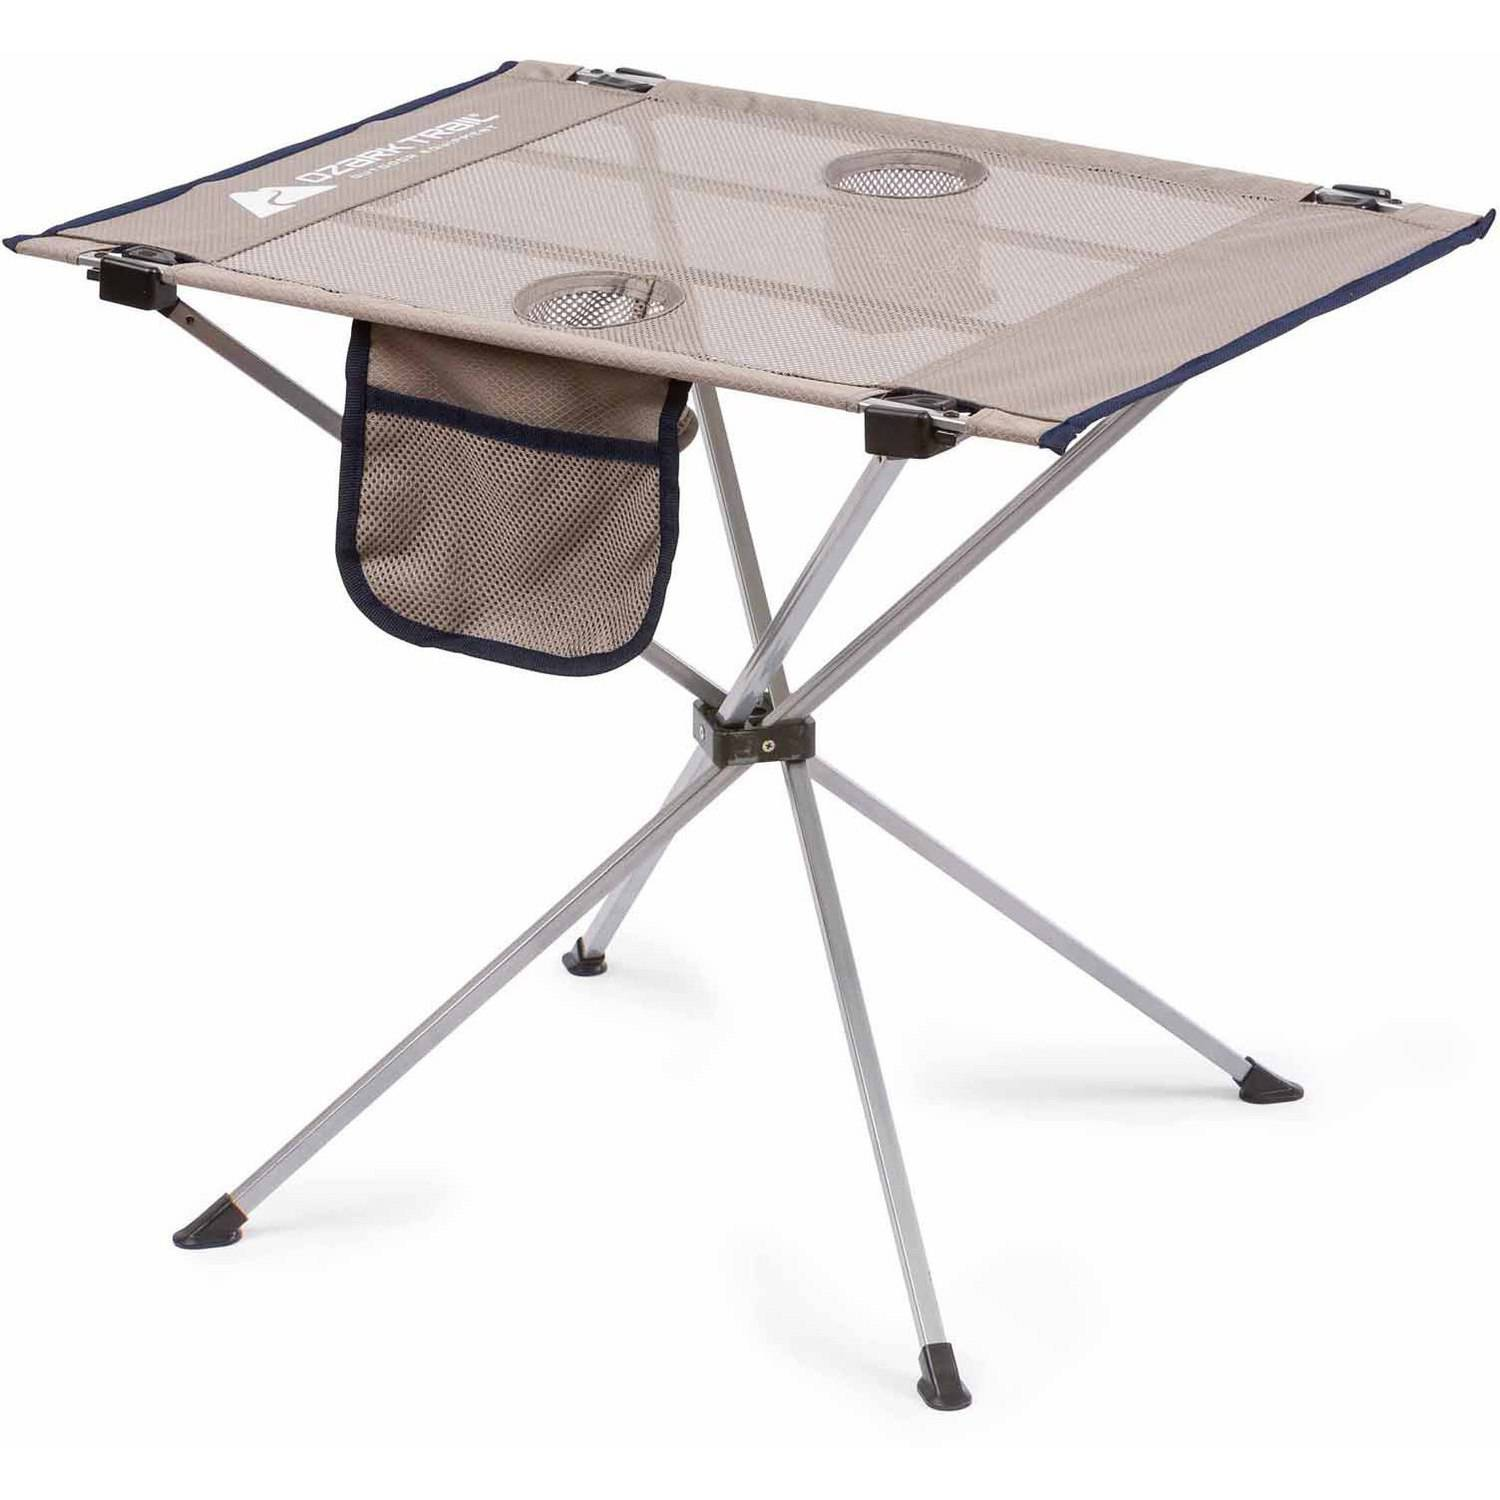 Ozark Trail Small Compact Side Table, Warm Gray   Walmart.com